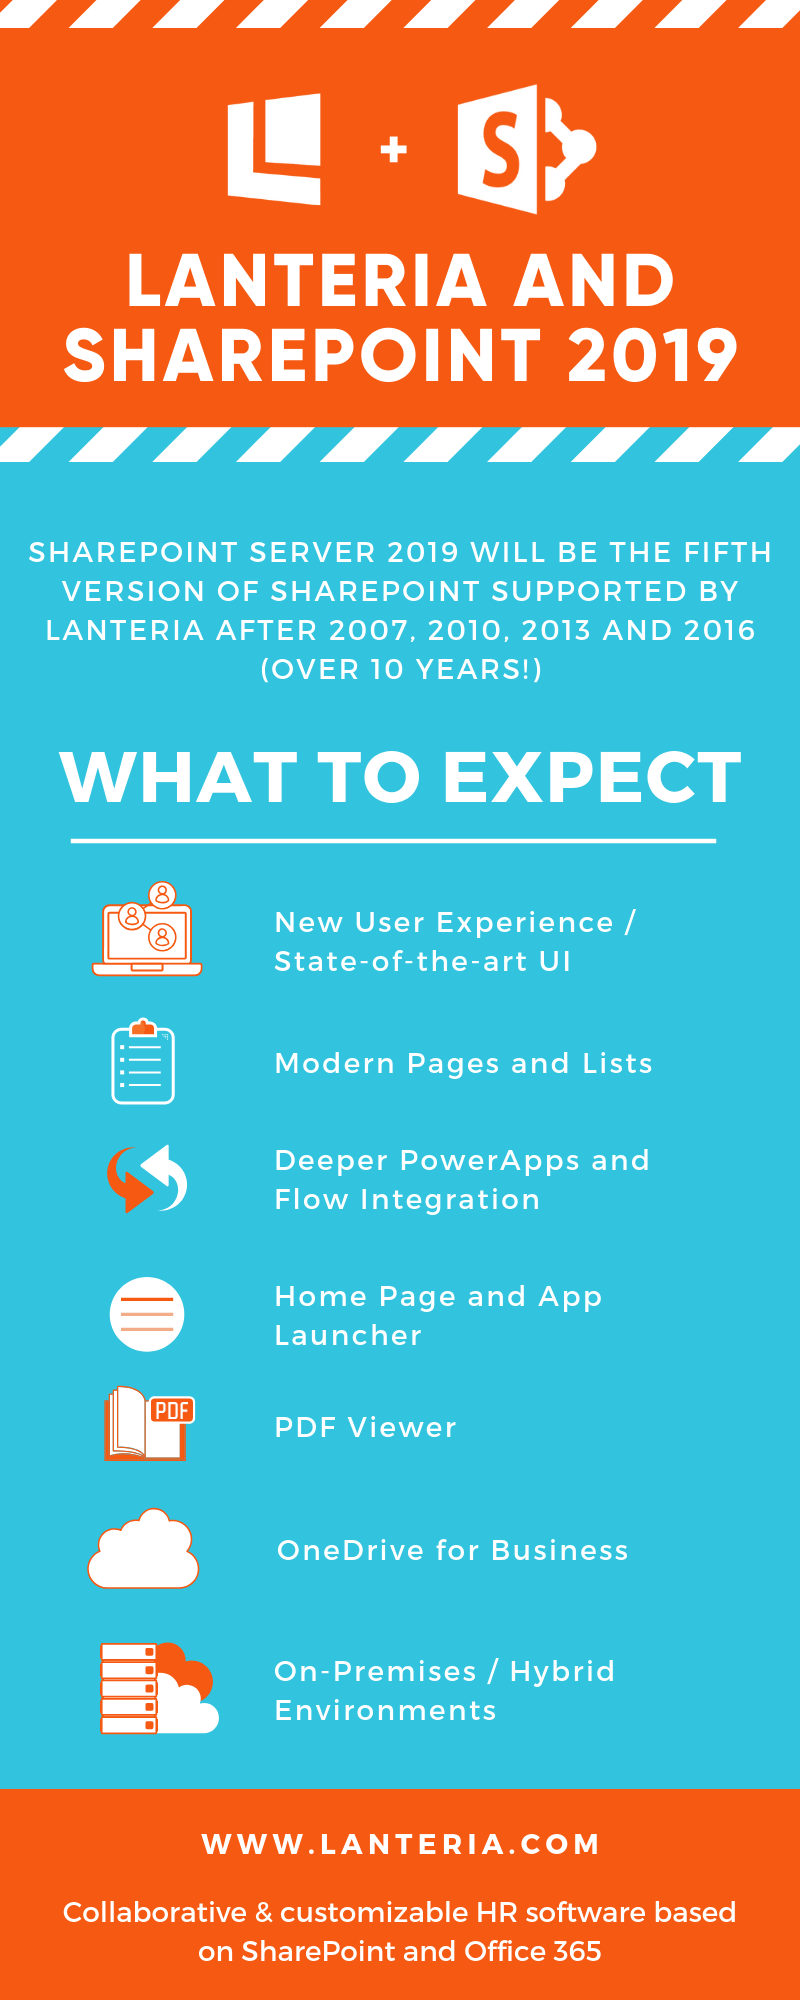 Lanteria and Sharepoint 2019